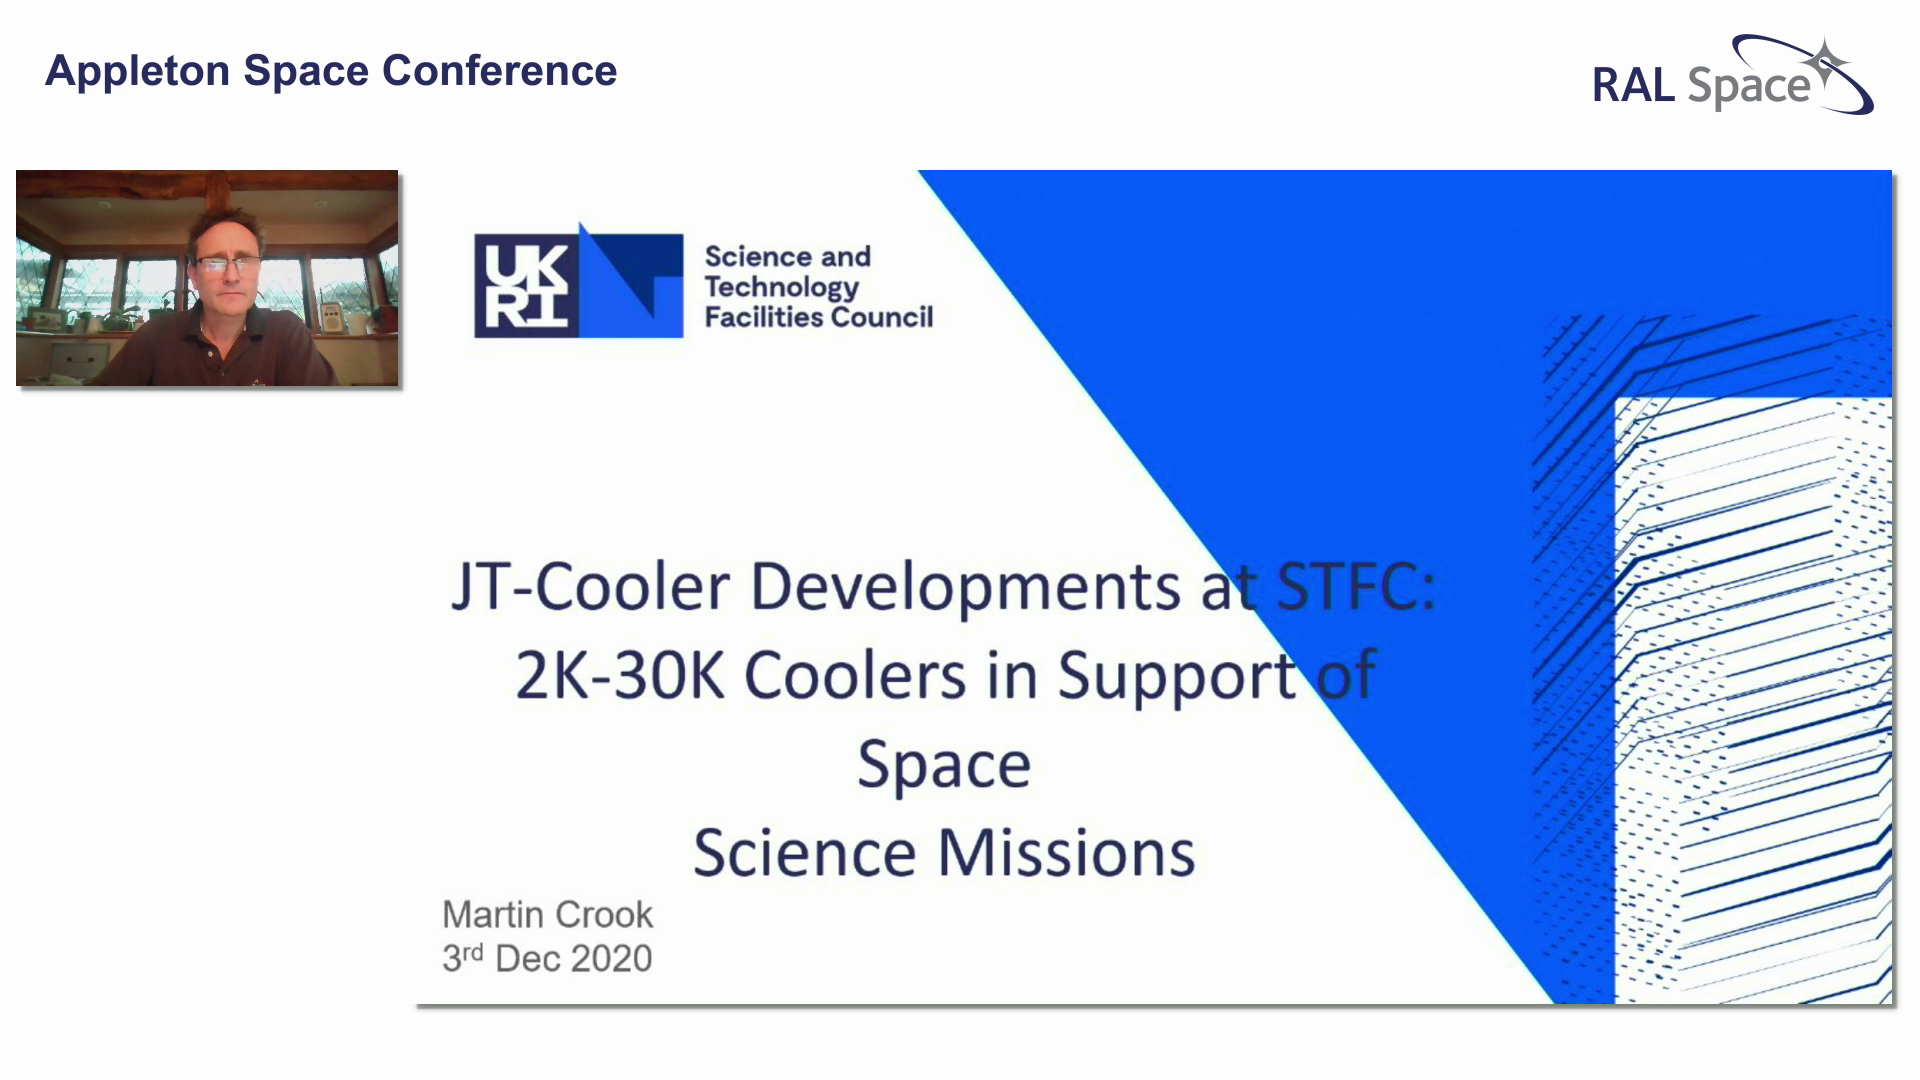 11 JT - Cooler Developments at STFC 2K-30K Coolers in Support of Space Science v2 HQ.png